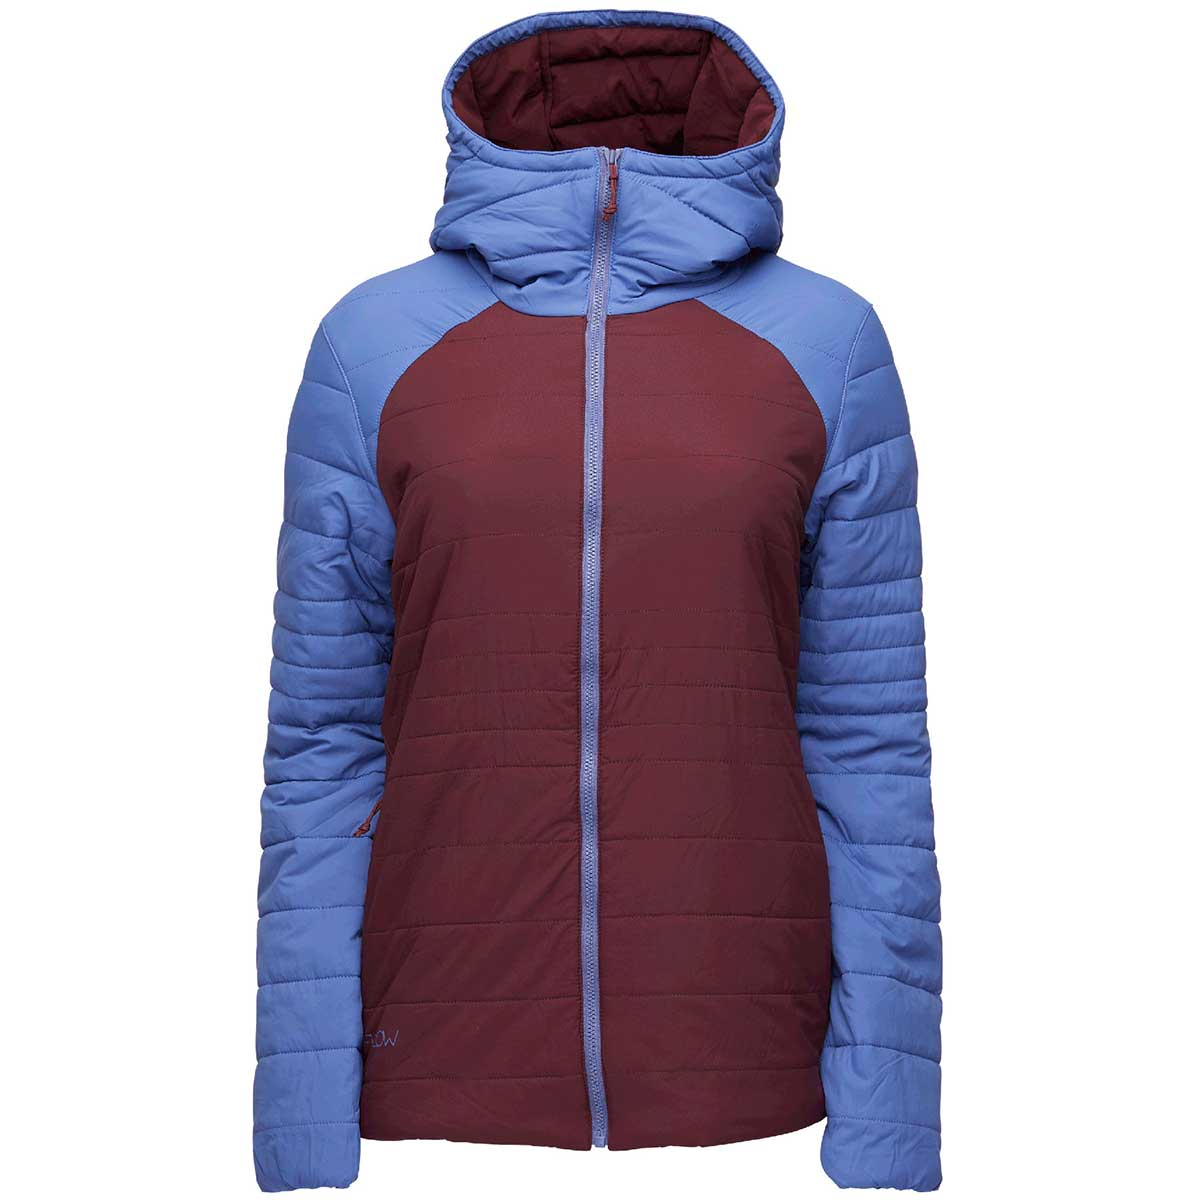 Flylow women's Mia Jacket in Lupine Tawny front view